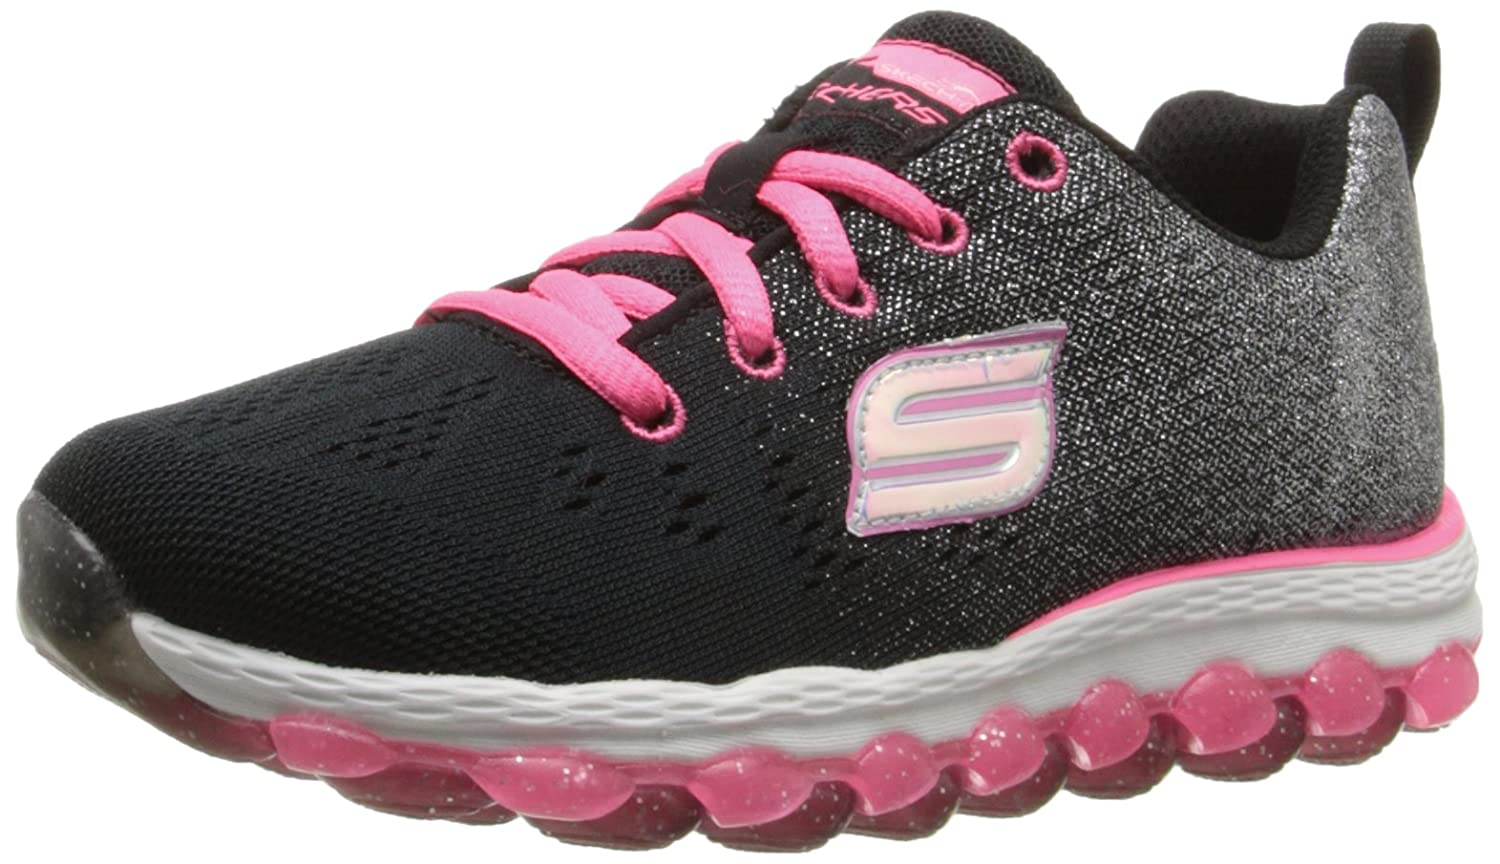 Skechers Kids Skech Air Athletic Sneaker (Little Kid/Big Kid) Skechers Kids' Footwear 80223L